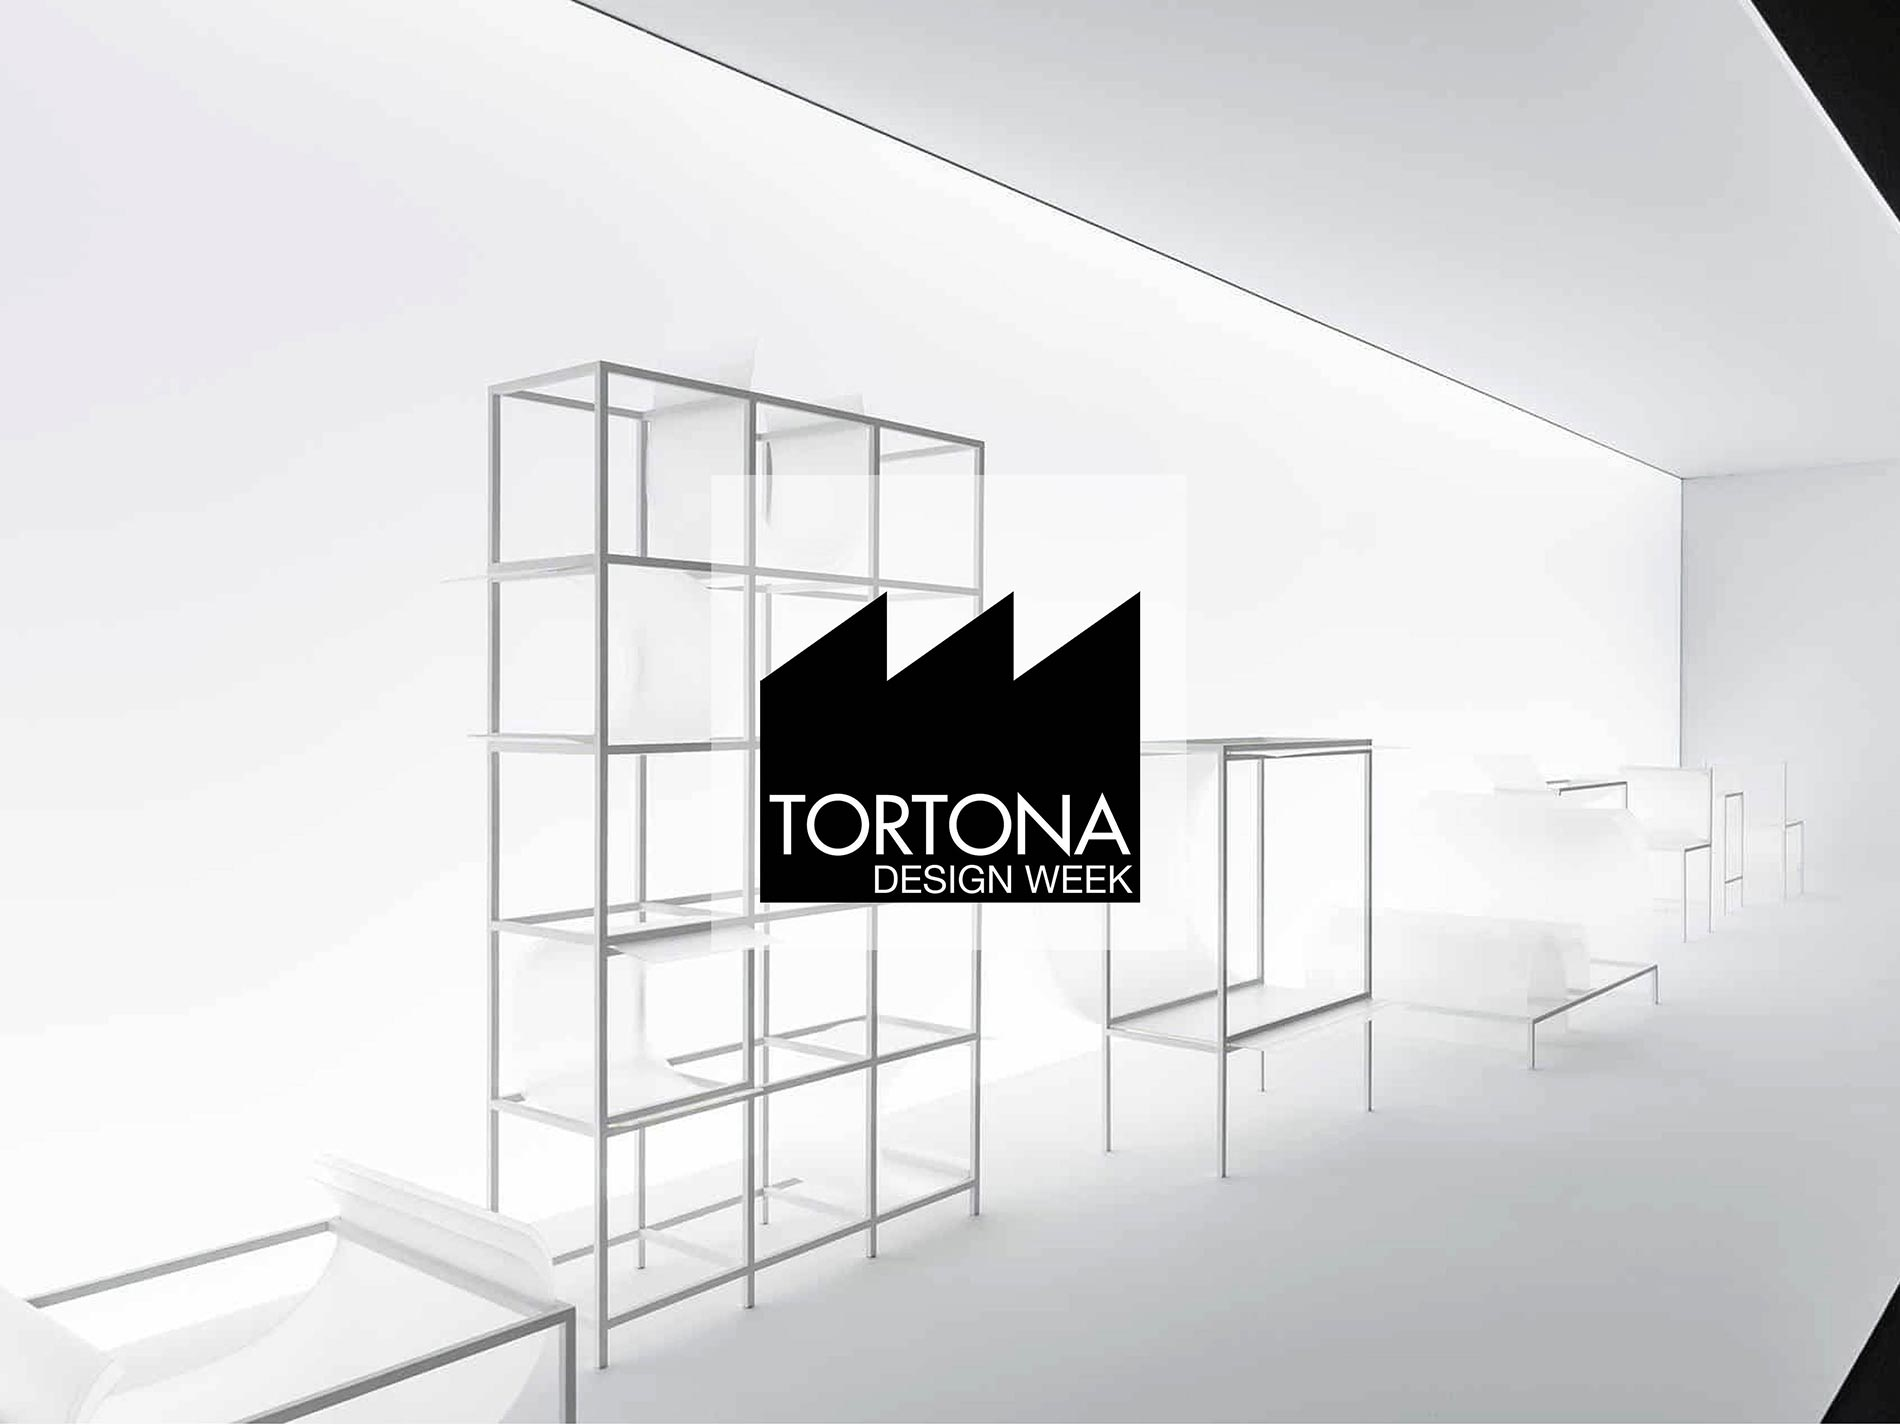 Milano Design Week 2019 Tortona